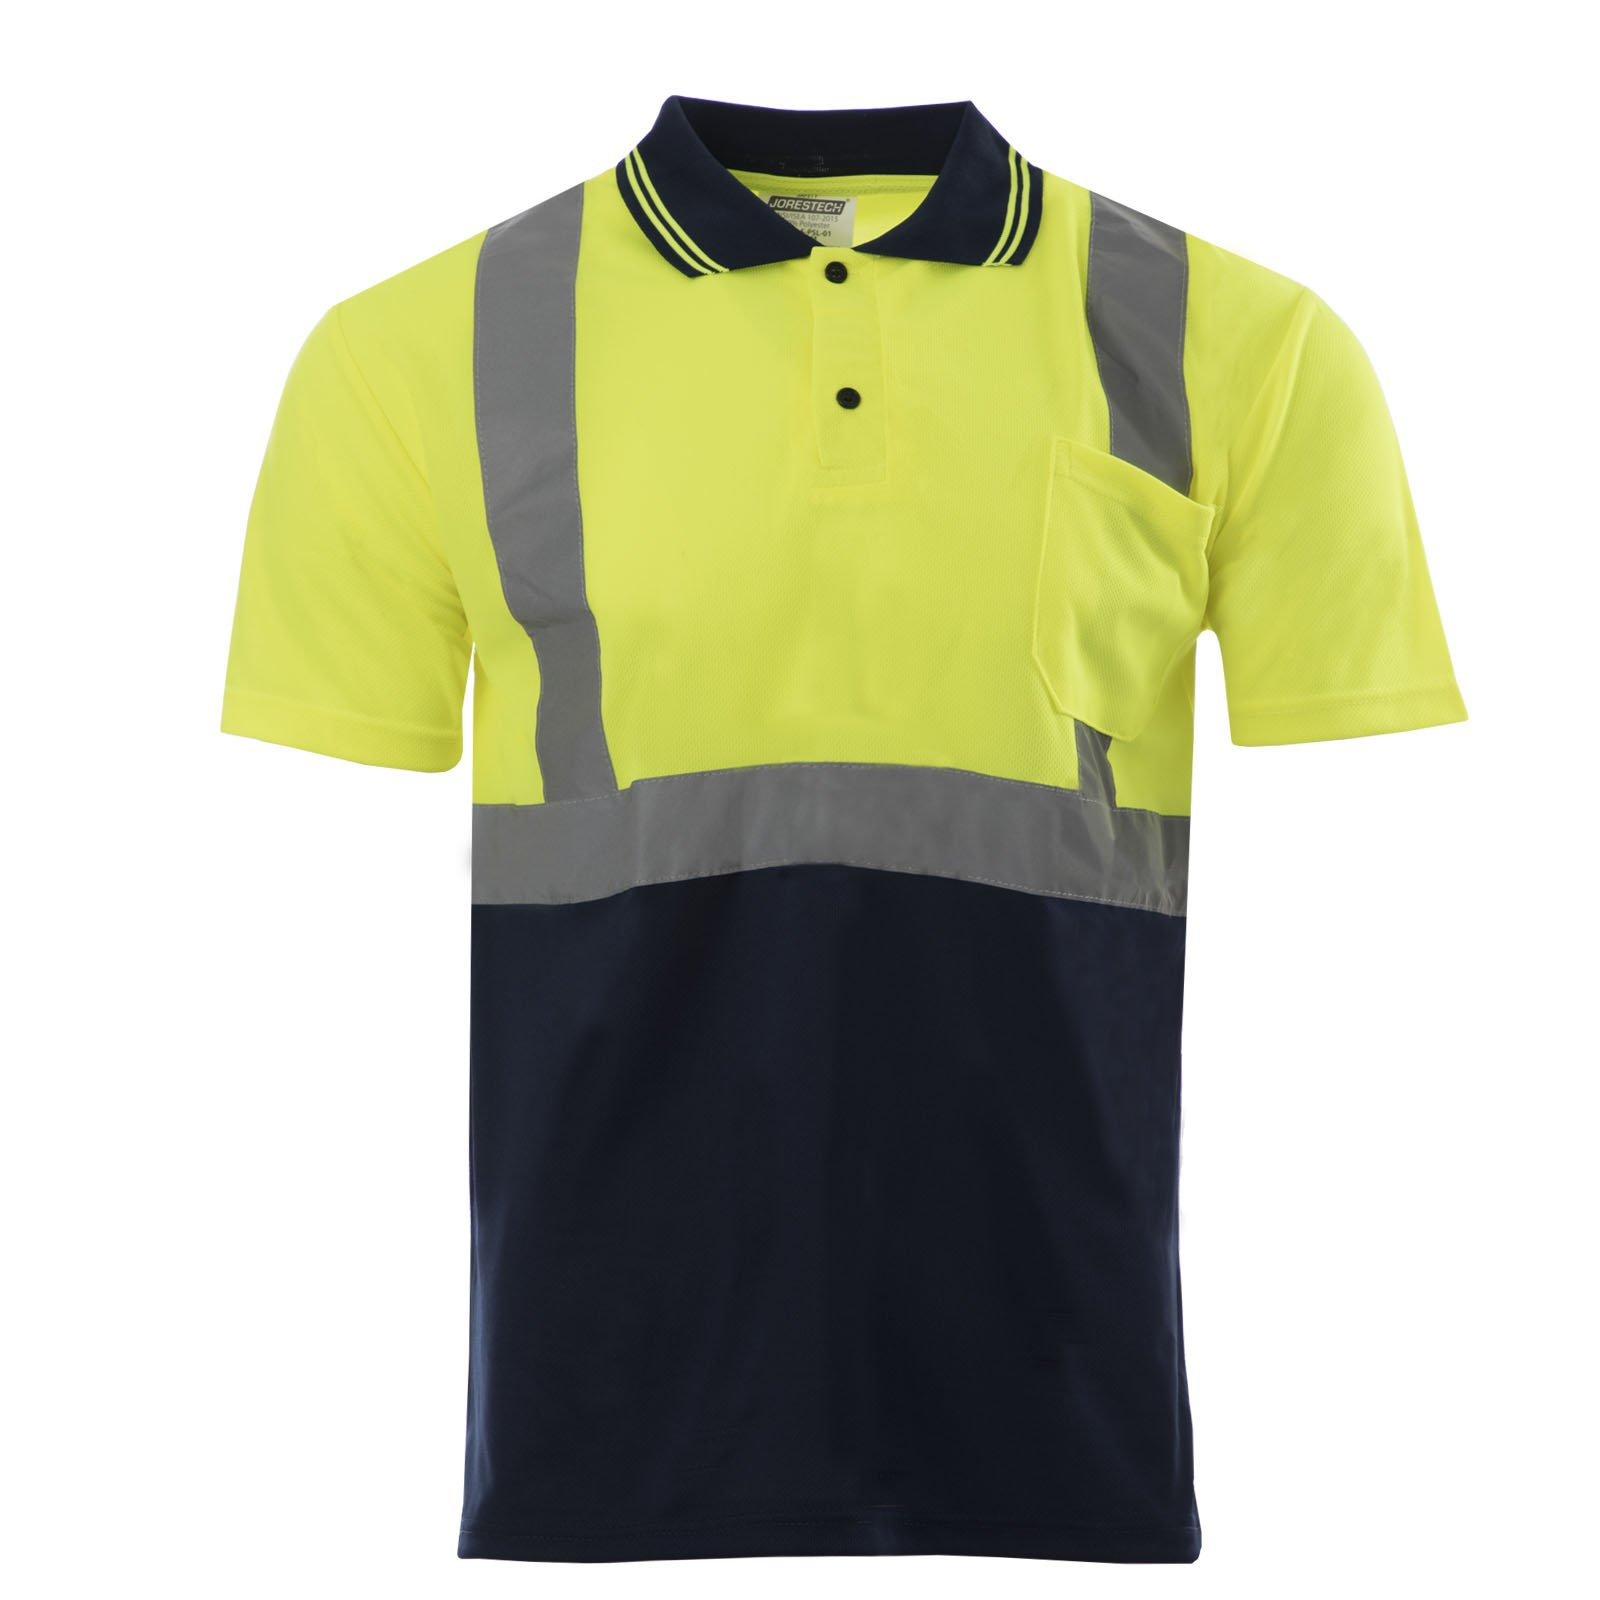 JORESTECH Safety short sleeve Polo shirt (Lime/Dark Blue)